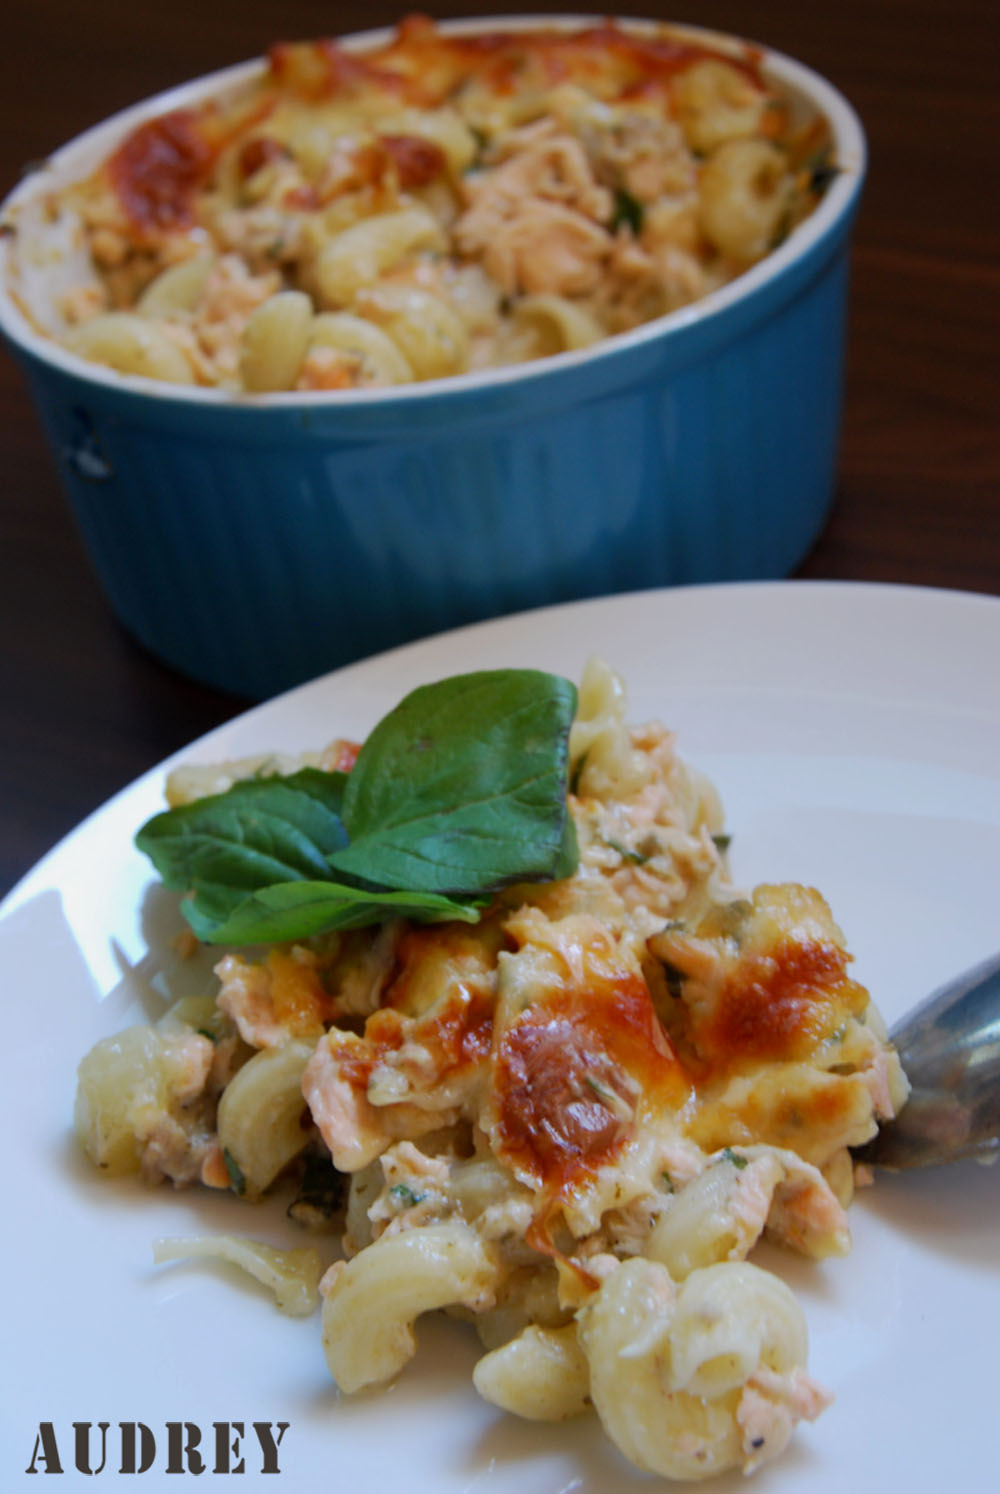 Baked Macaroni with Salmon and Clam Chowder 2